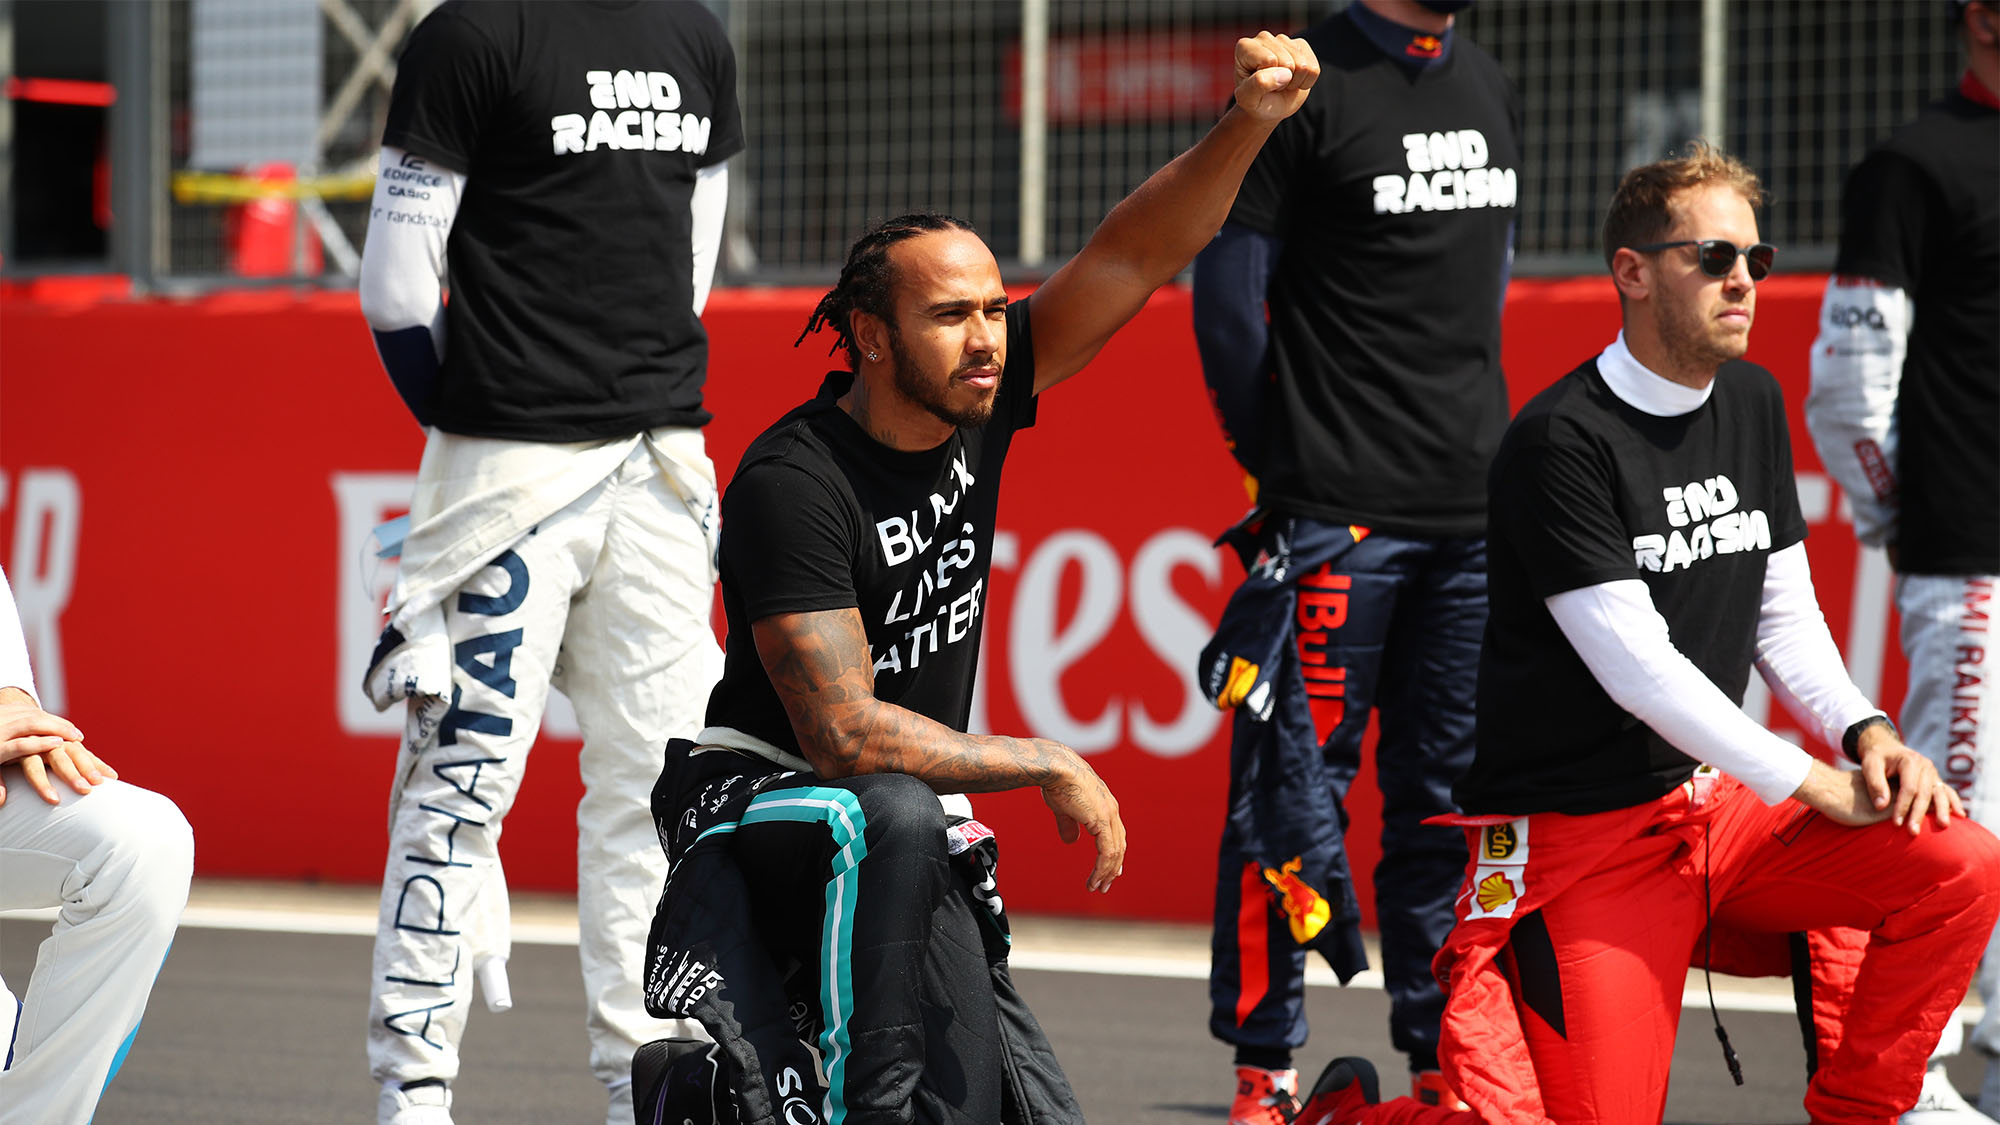 NORTHAMPTON, ENGLAND - AUGUST 09: Lewis Hamilton of Great Britain and Mercedes GP takes a knee on the grid in support of the Black Lives Matter movement prior to the F1 70th Anniversary Grand Prix at Silverstone on August 09, 2020 in Northampton, England. (Photo by Bryn Lennon/Getty Images)